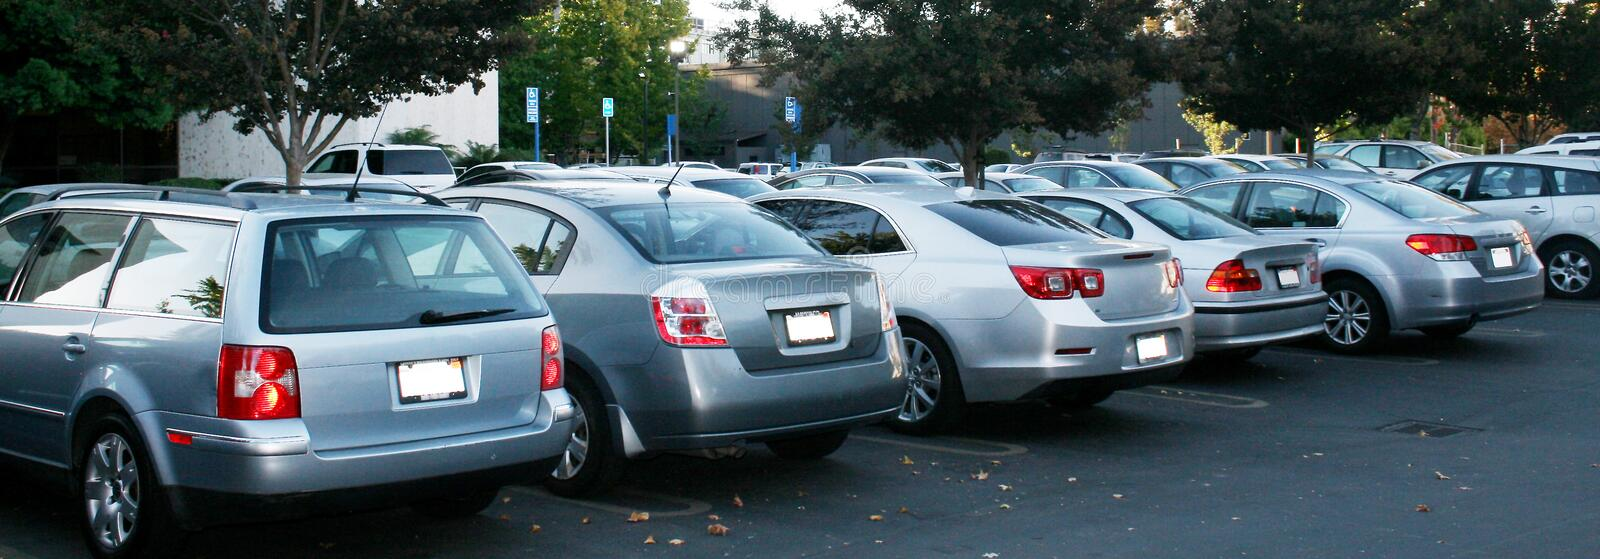 Gray cars stock photo